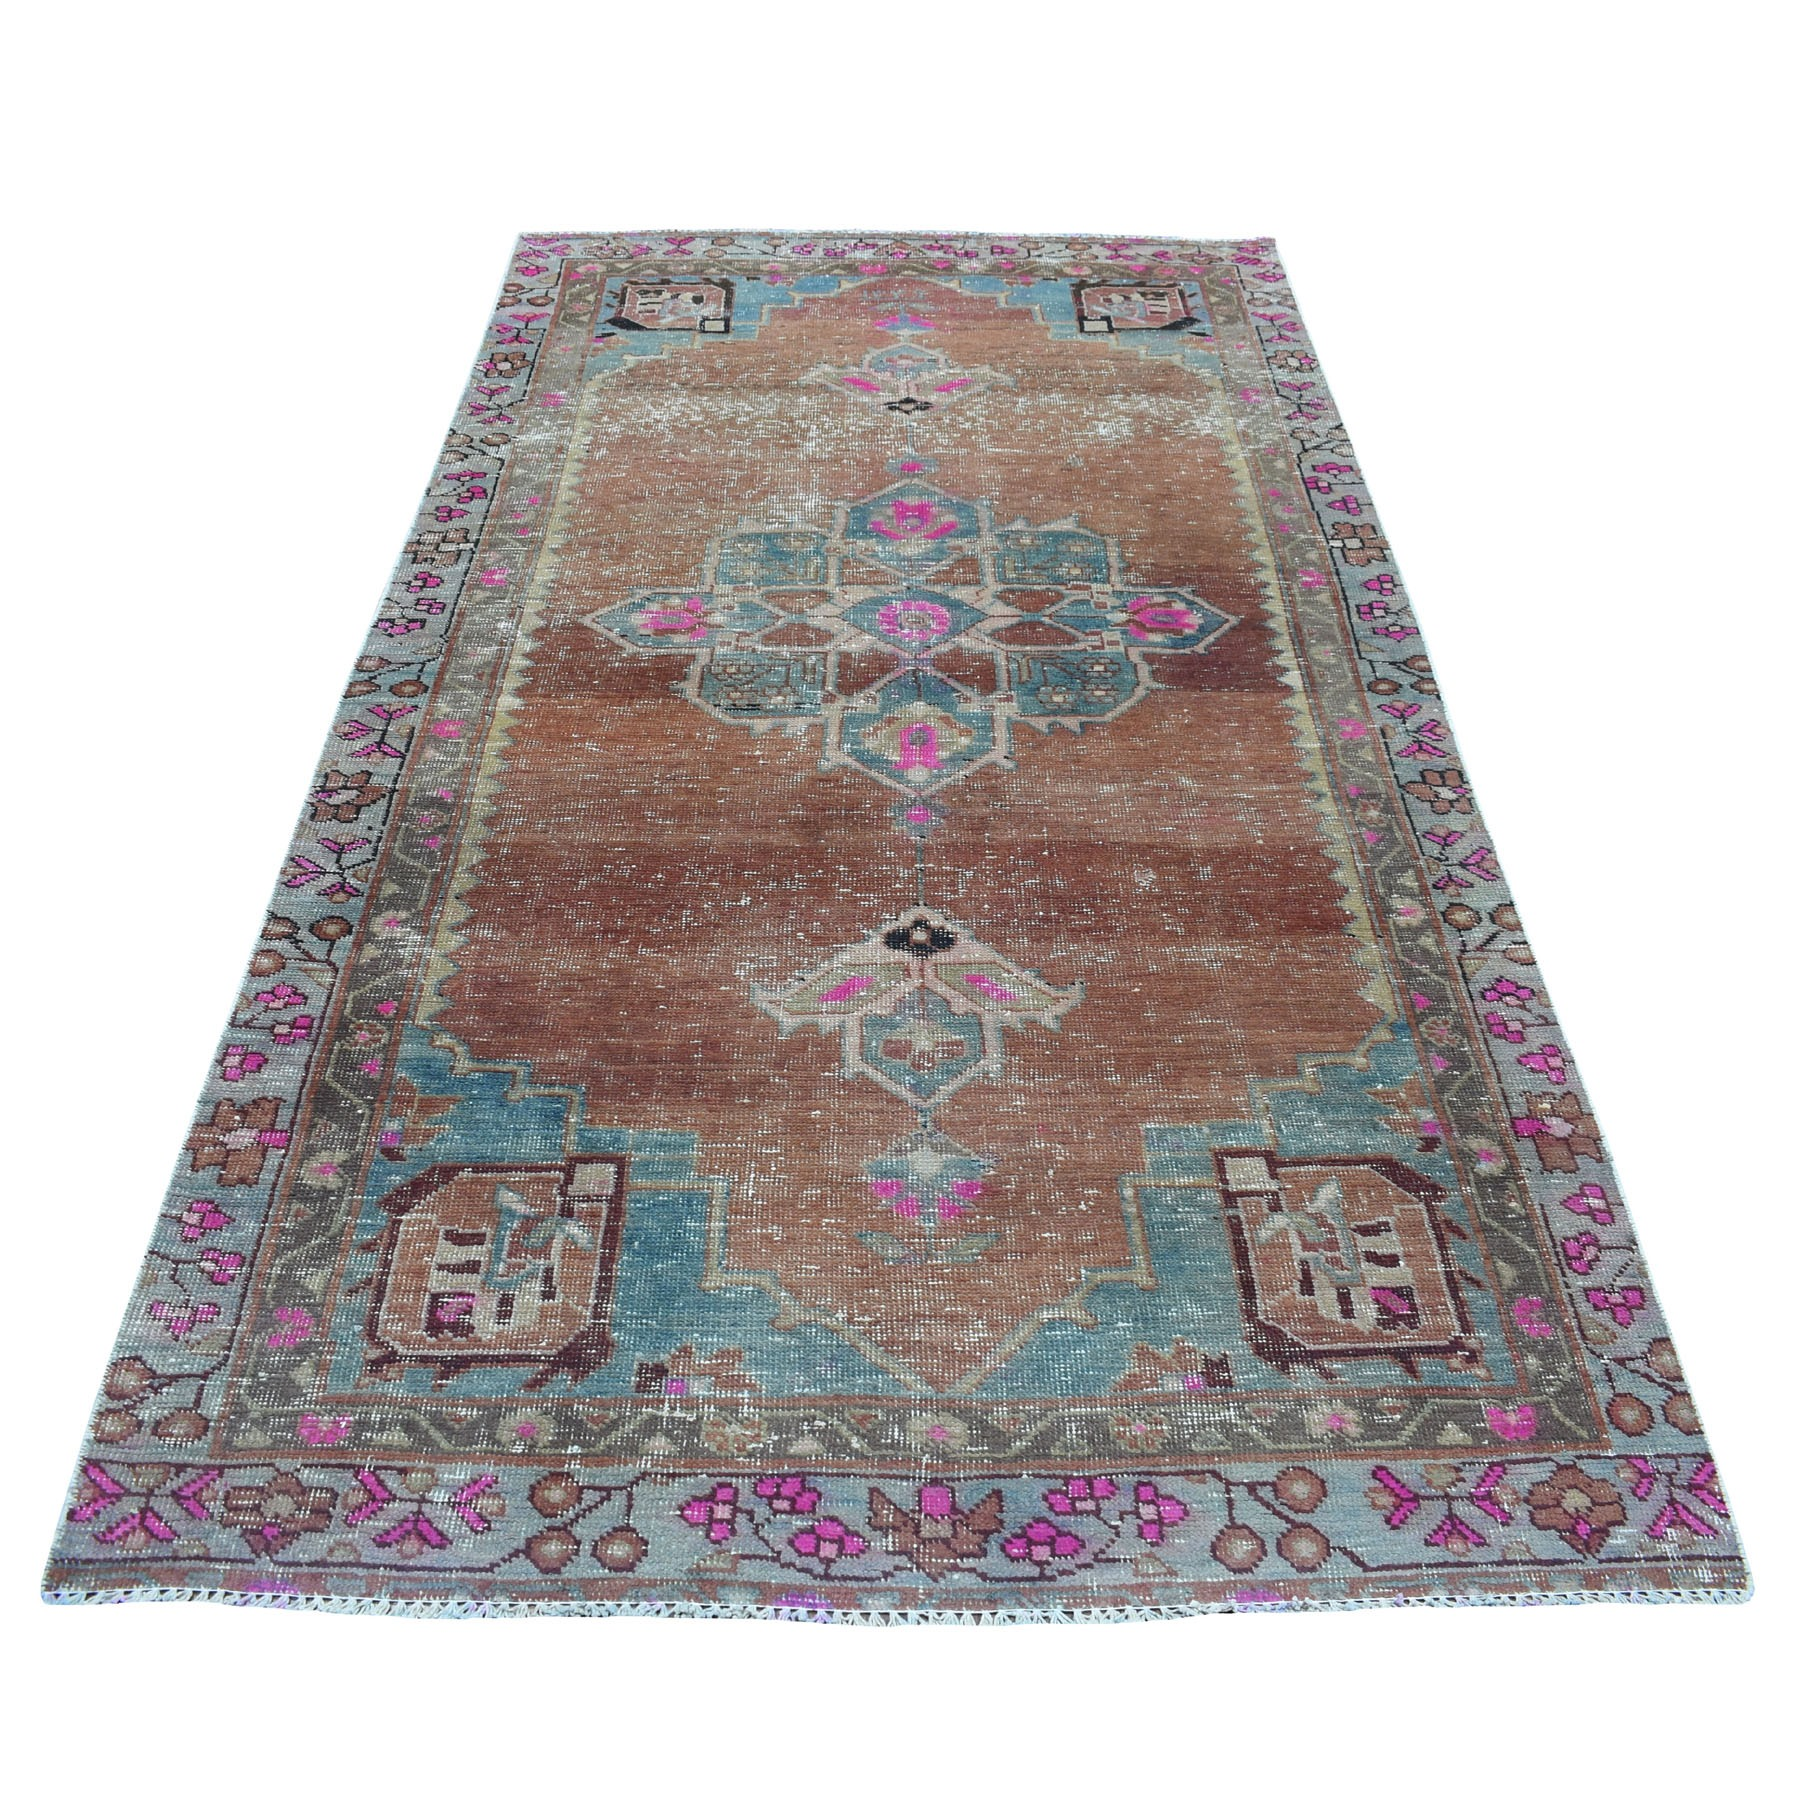 "4'6""x9' Vintage And Worn Down Wide Runner Persian Qashqai Hand Woven Bohemian Rug"